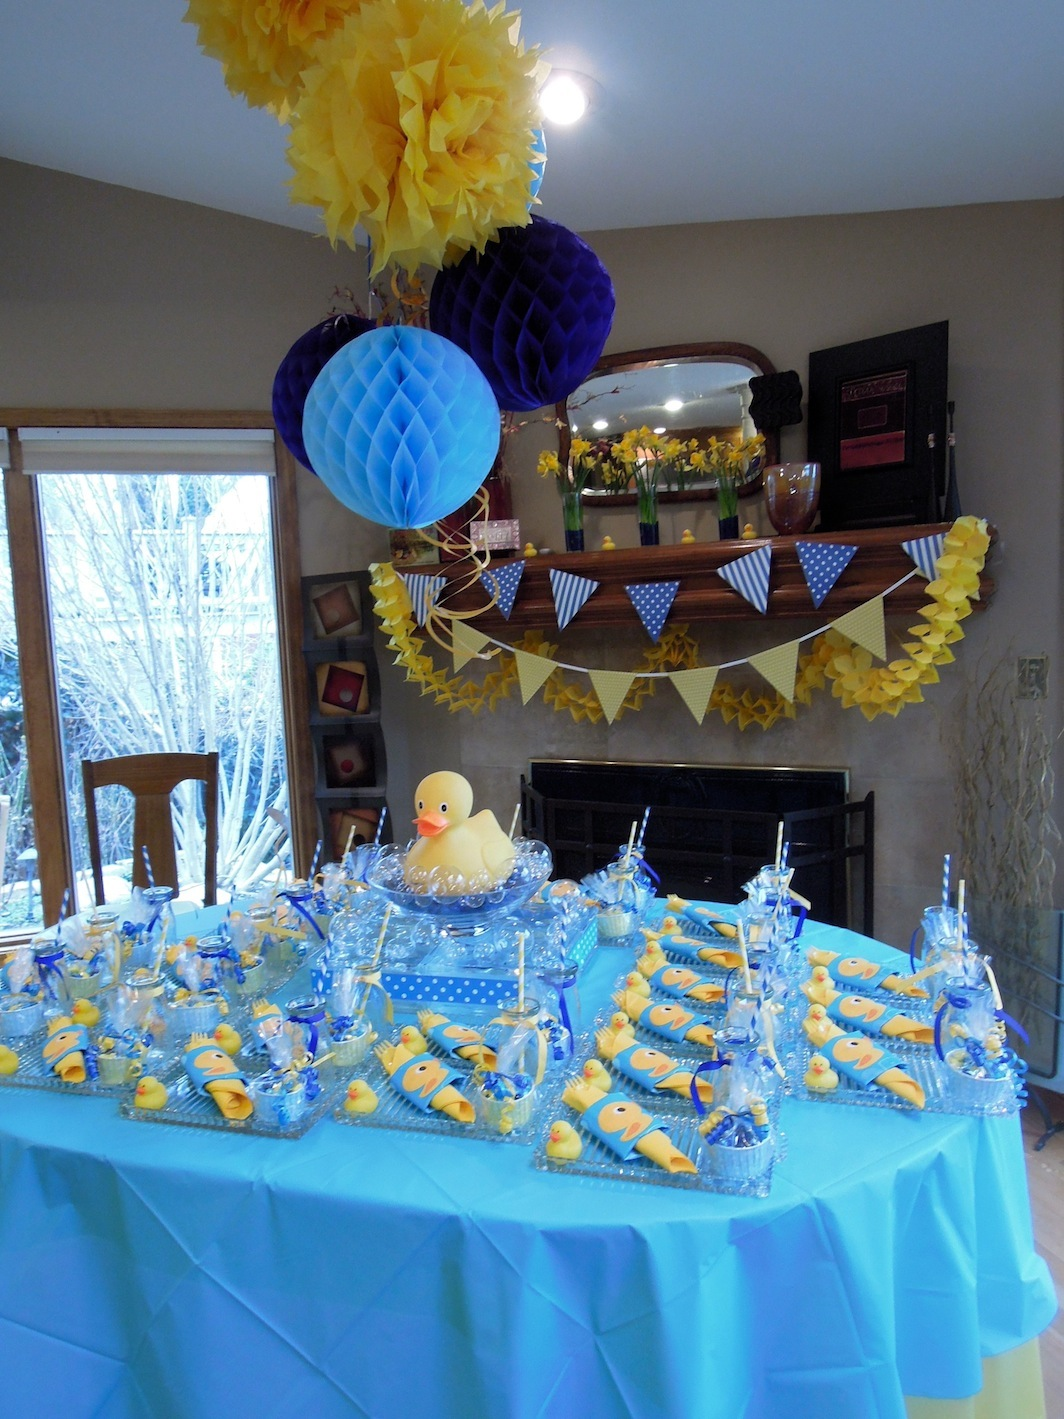 tissue pom poms and honeycomb spheres hung above the table a flag